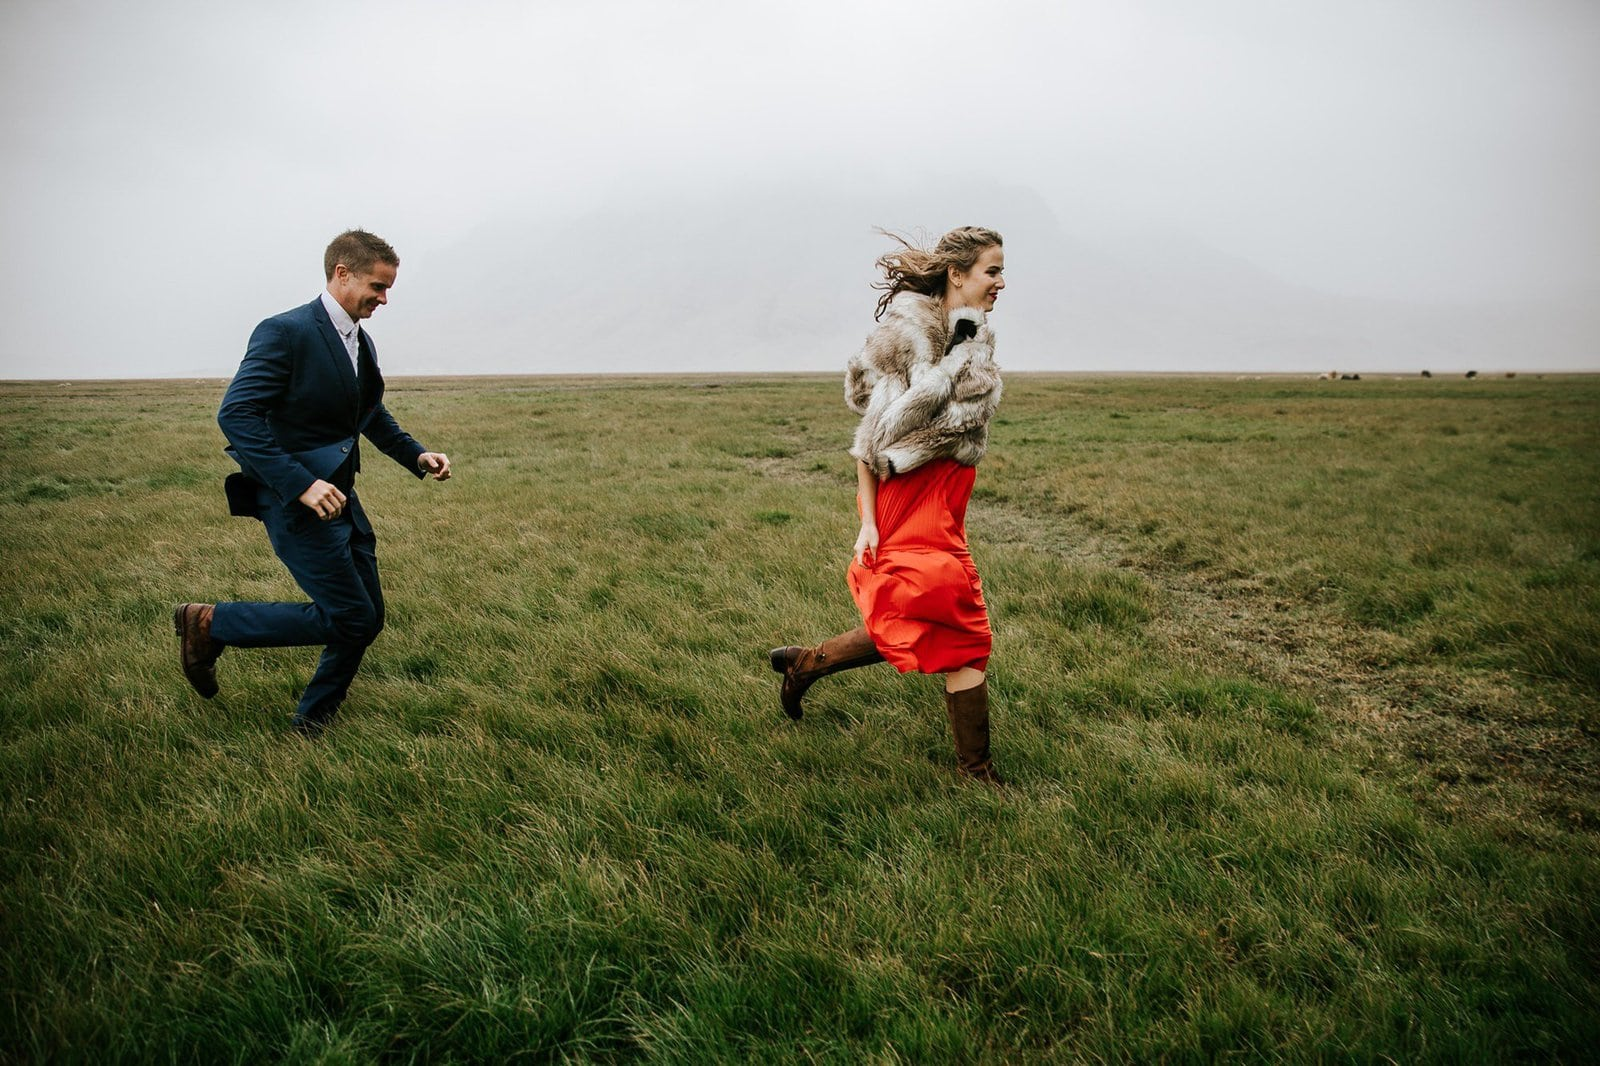 Fun shot of bride and groom running.